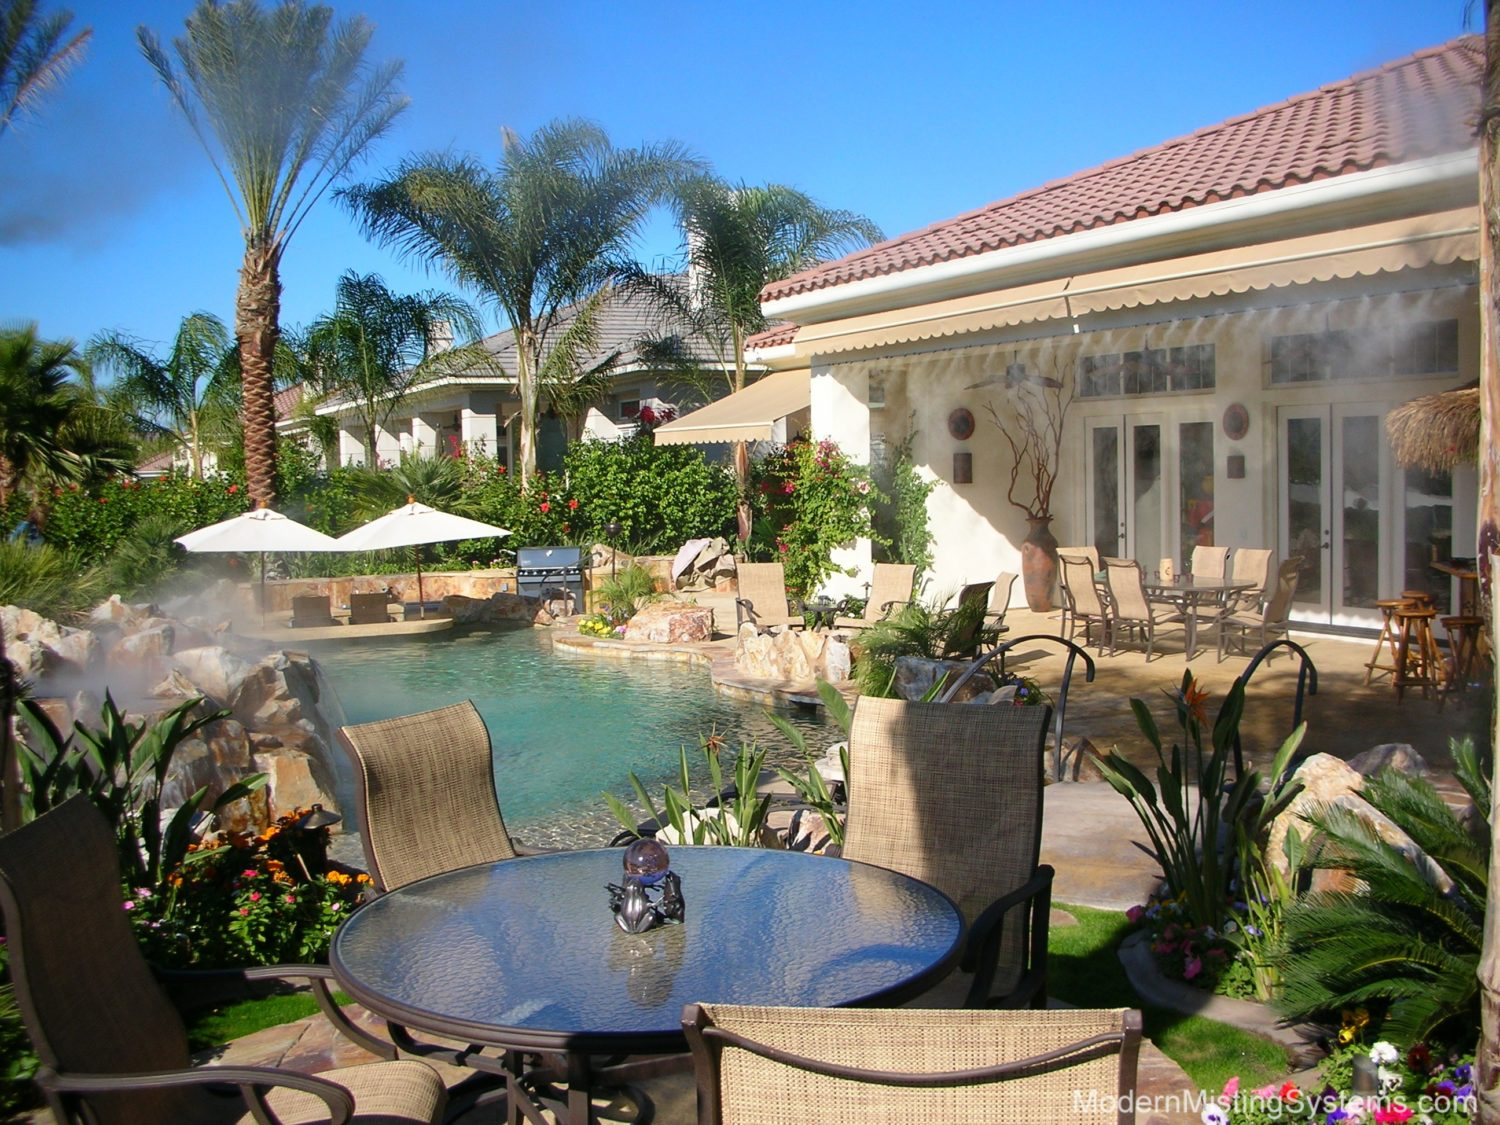 Outdoor Misting Systems - Outdoor Misting Systems Modern Misting Systems For Palm Springs